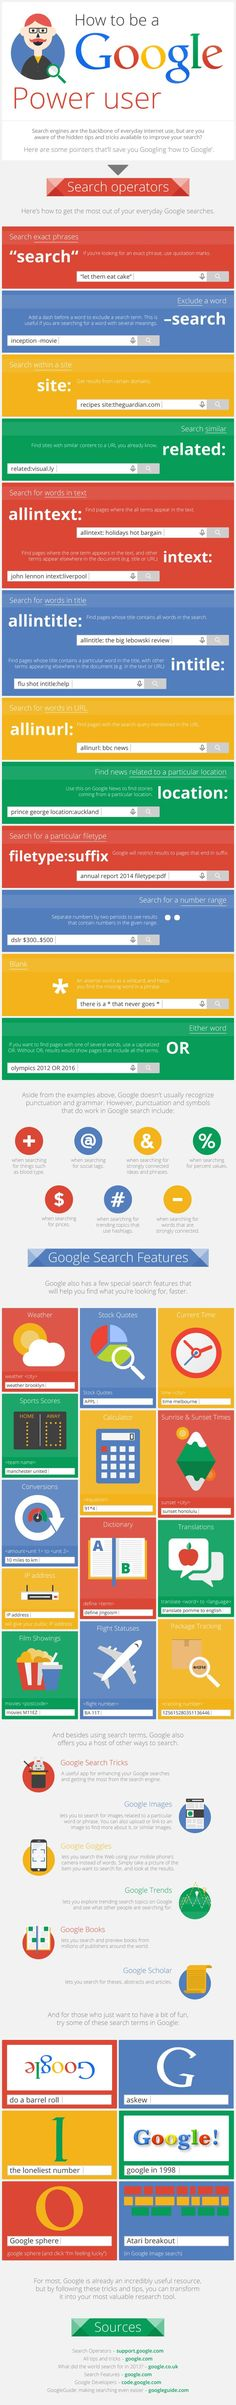 How to Become a Google Search Jedi Master  #Google  #infographic